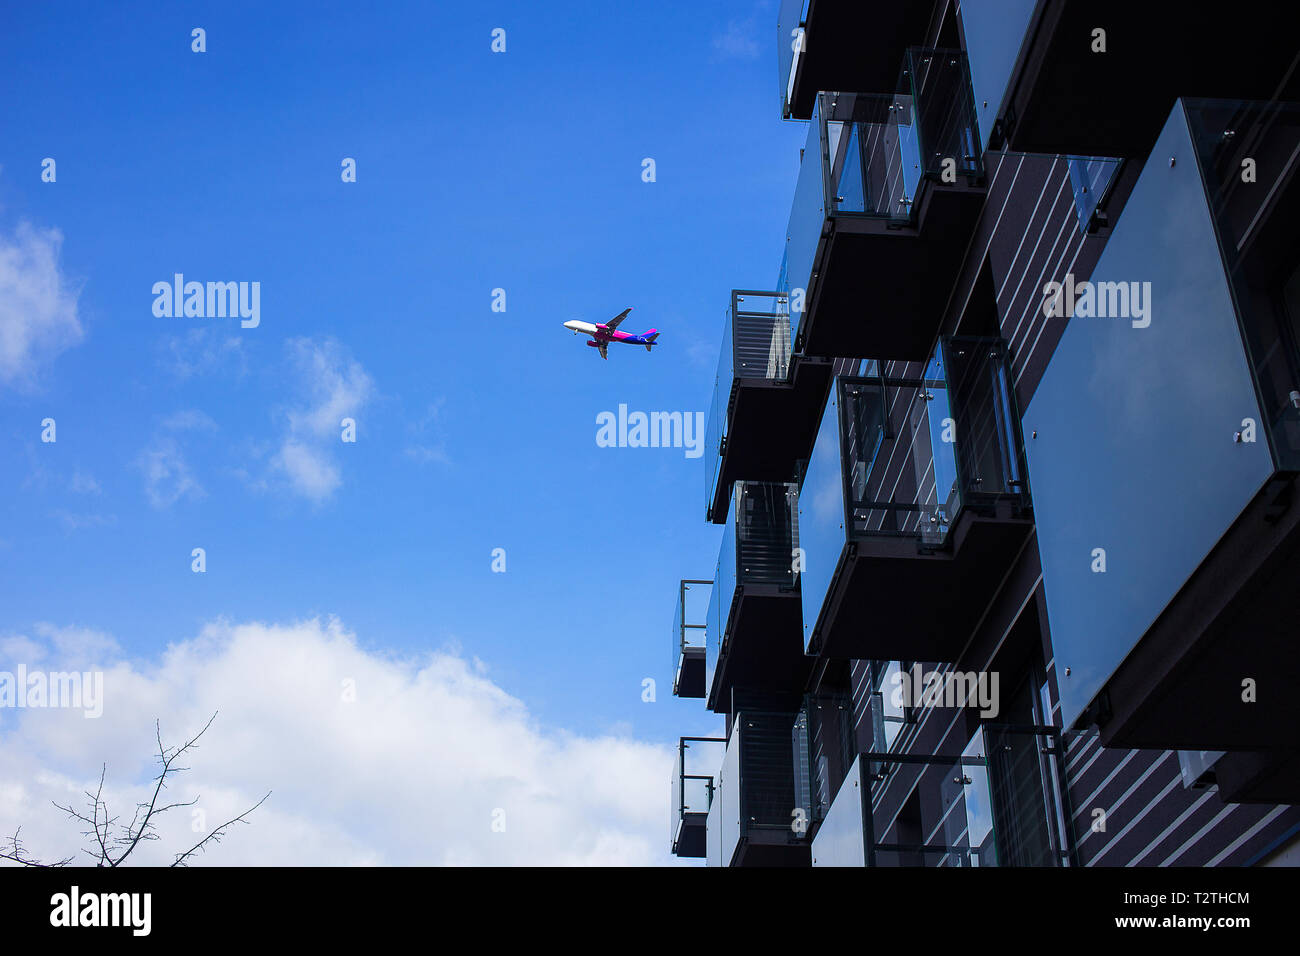 Poznan - Poland / March 16 2019, Plane is flying over new luxury apartment building during one of the last flights, Hungarian budget airlines Wizz Air Stock Photo